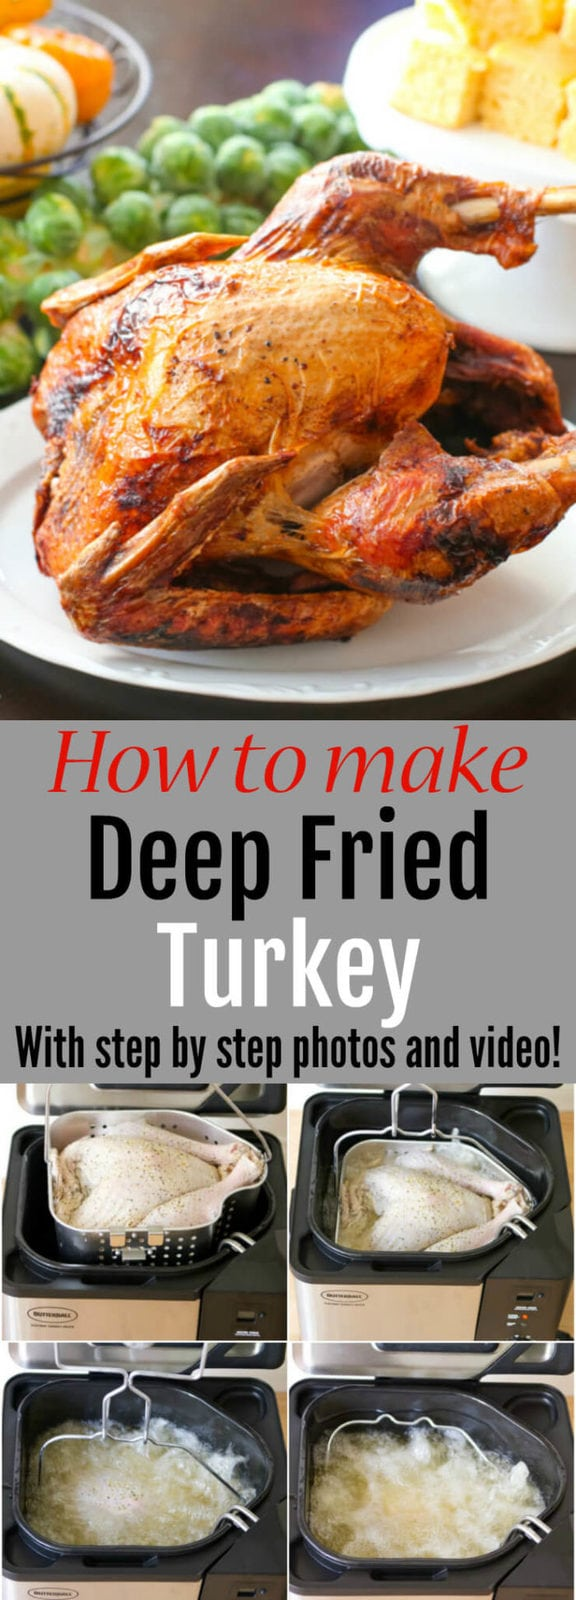 How to make Deep Fried Turkey